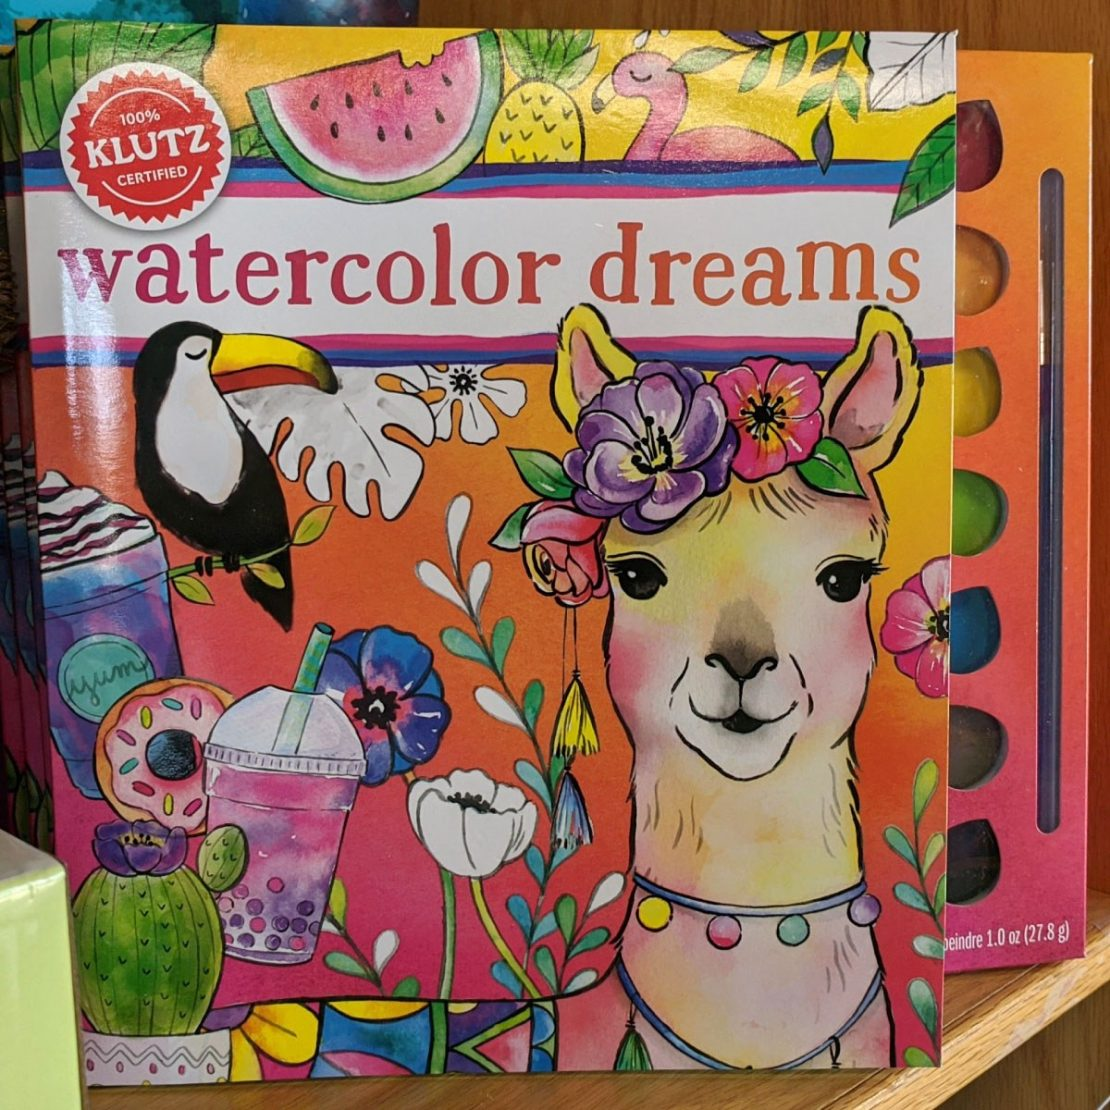 Watercolor Dreams from Klutz